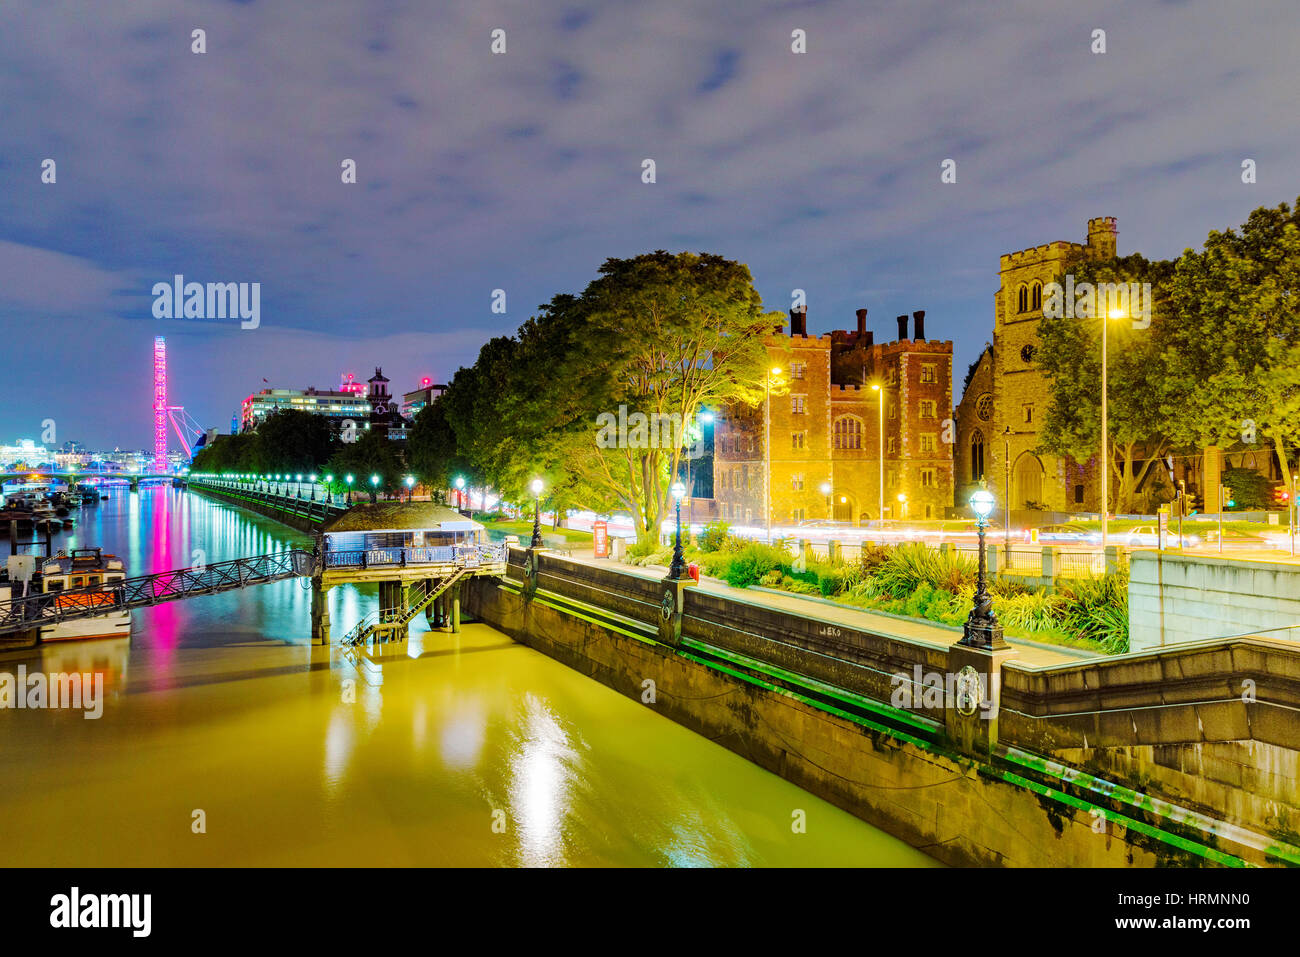 Riverside view of London at night from lambeth bridge - Stock Image